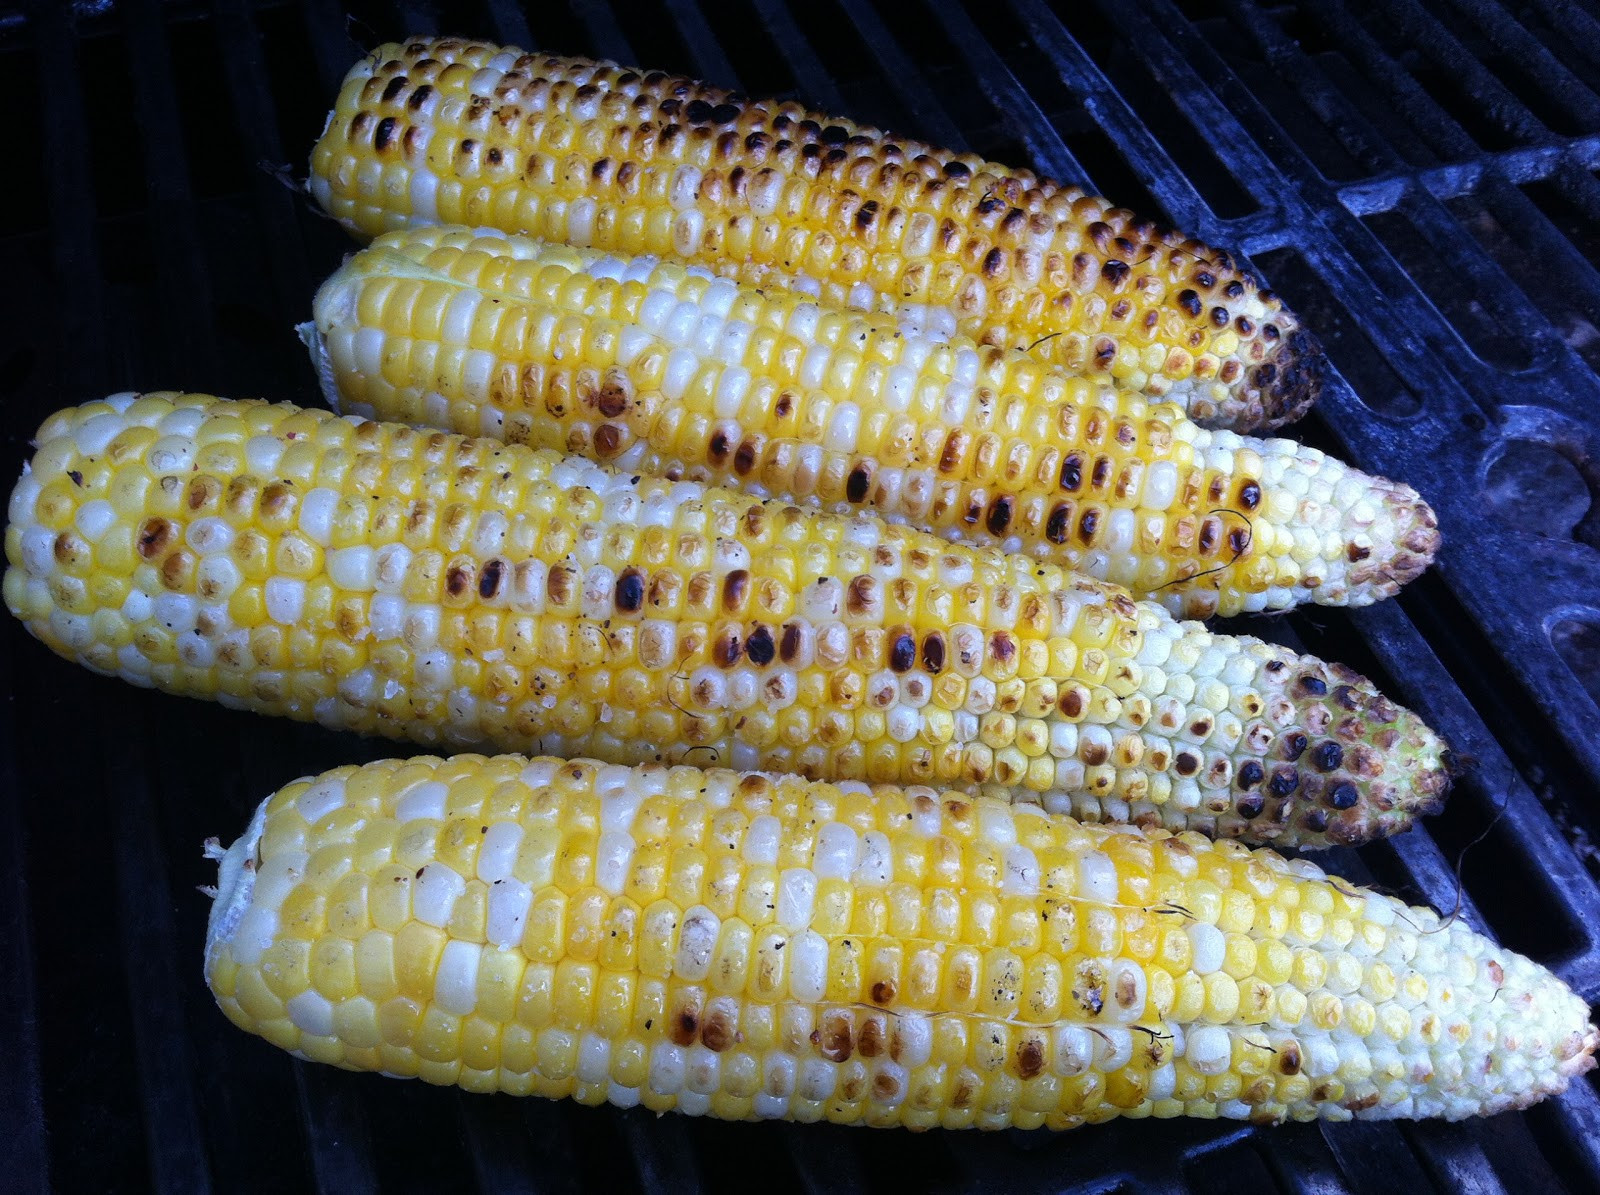 Corn On Cob On Grill  The BEST Way to Cook Corn on the Cob on the Grill NO